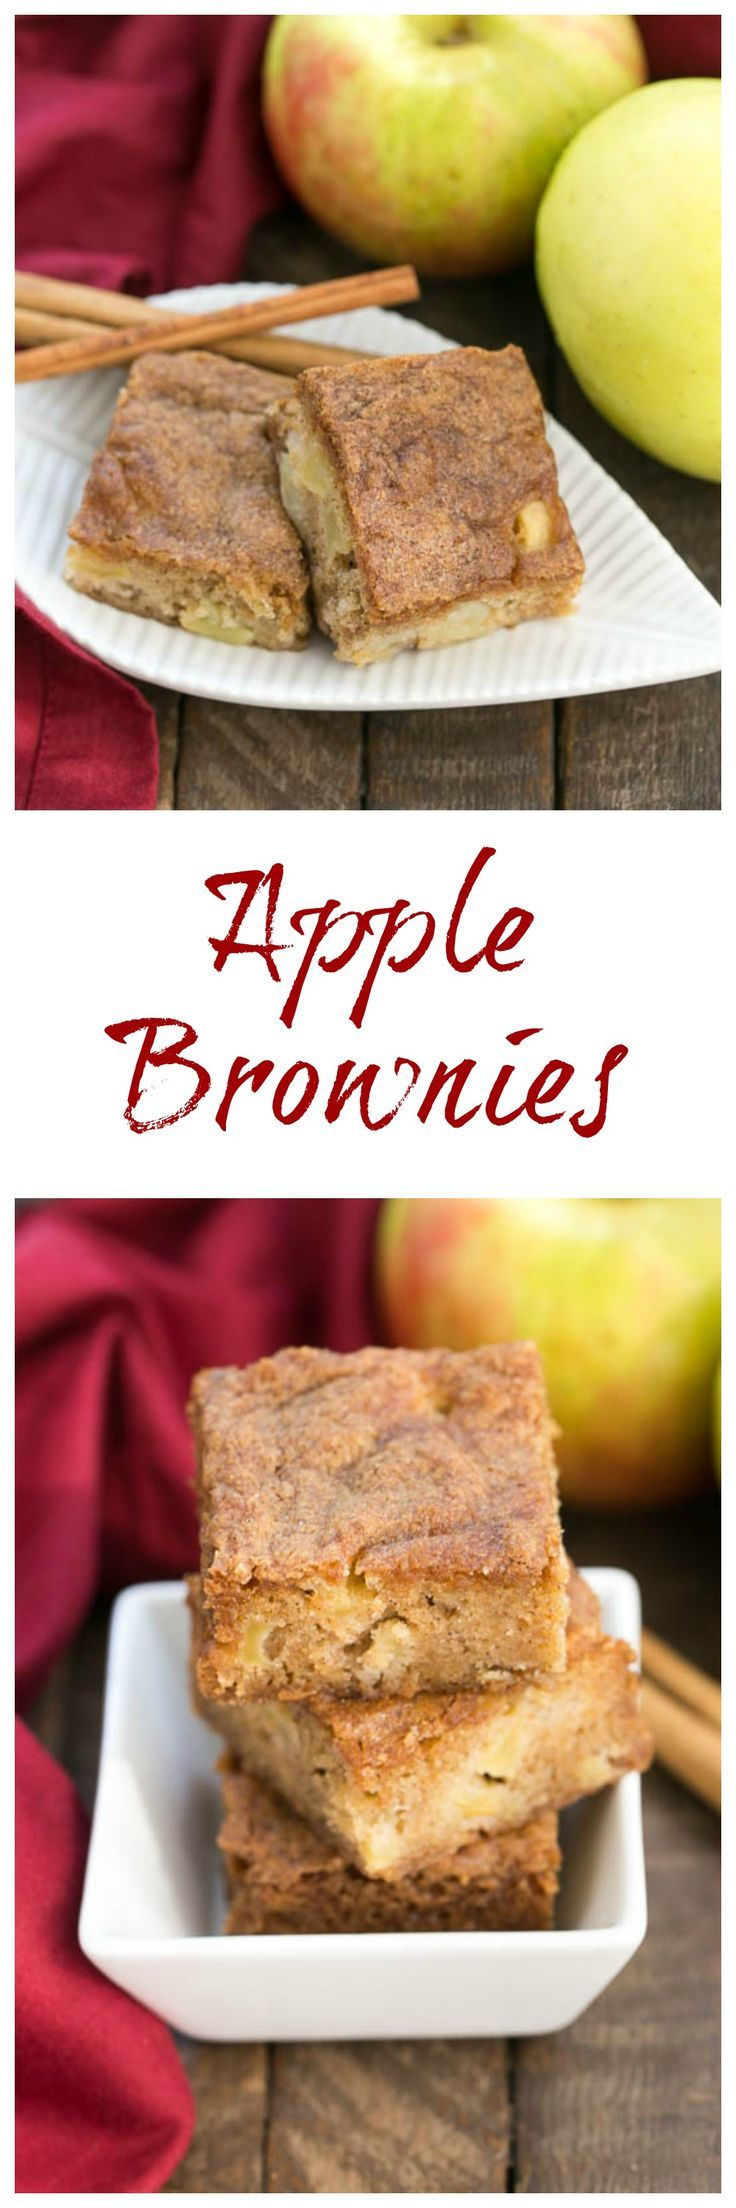 Apple Brownies | Chock full of apple chunks and cinnamon spiced